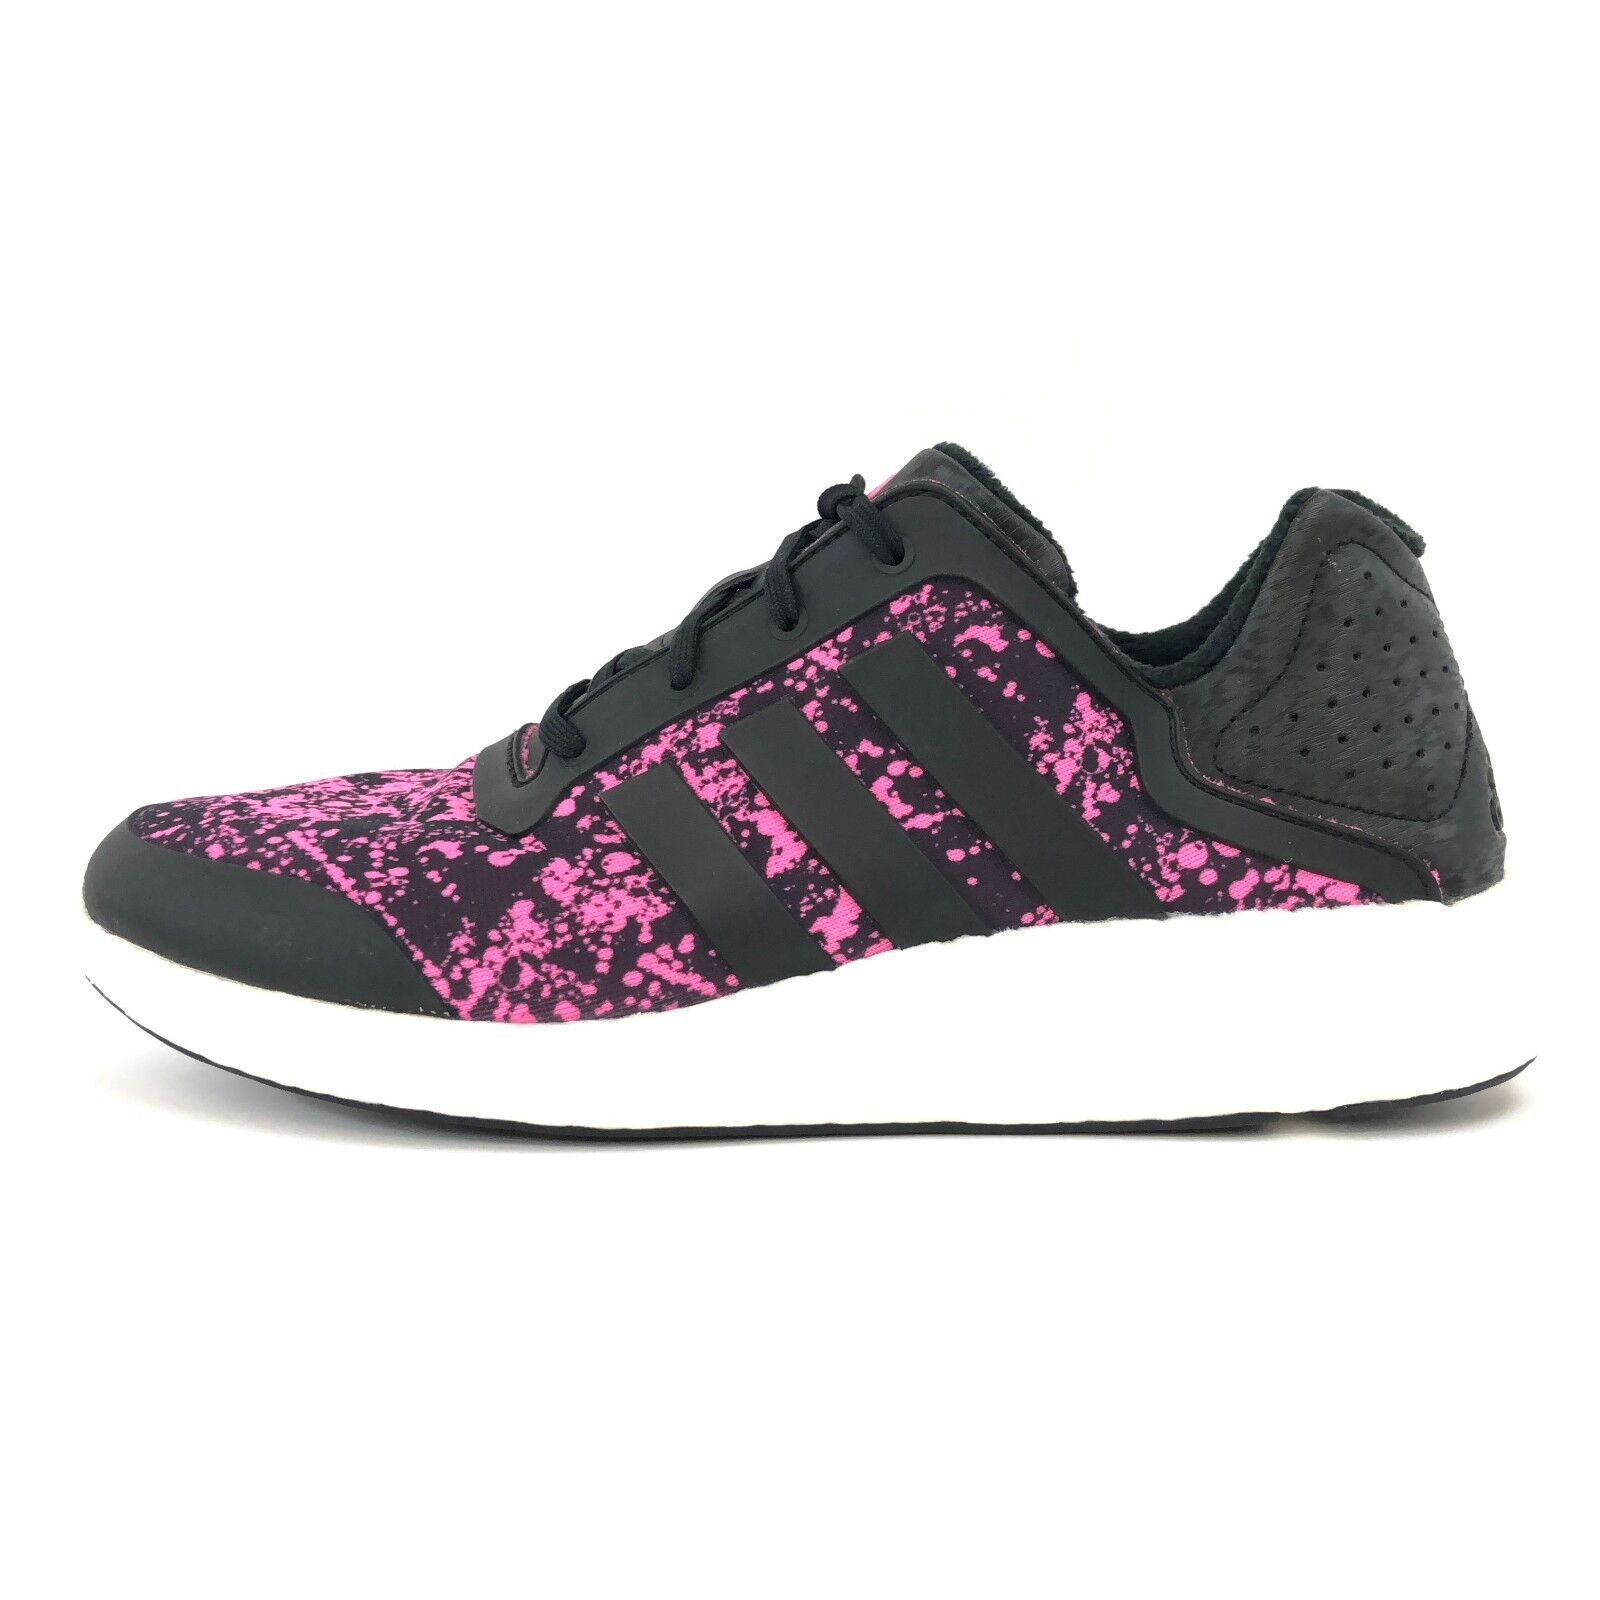 Adidas Women's Pure Boost Gym Core Black & Pink Gym Boost Running Shoes M21406 22dc26